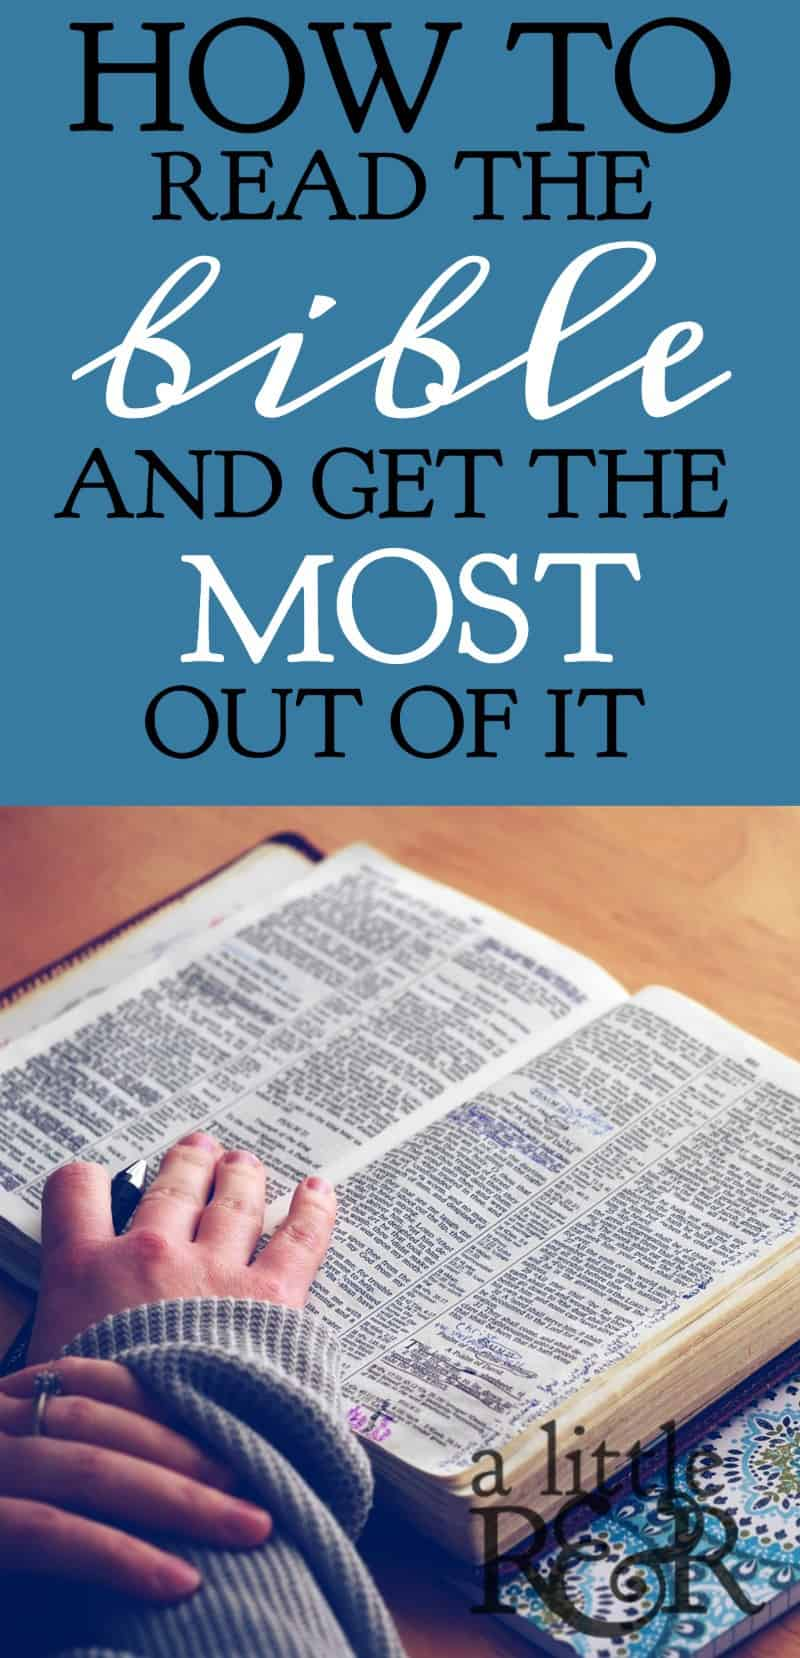 Have you ever wondered where to start reading your Bible? Follow my 4-point plan and learn to read your Bible with confidence! A Little R & R | Rosilind Jukić | Christianity | Christian living | Christian blog | Christian faith | Read the Bible | Quiet Times | #quiettimes #Bible #warroom #warriorprincess #prayerjournaling #Scripture #Christian #Christianliving #spiritual #spiritualgrowth #God #jesus